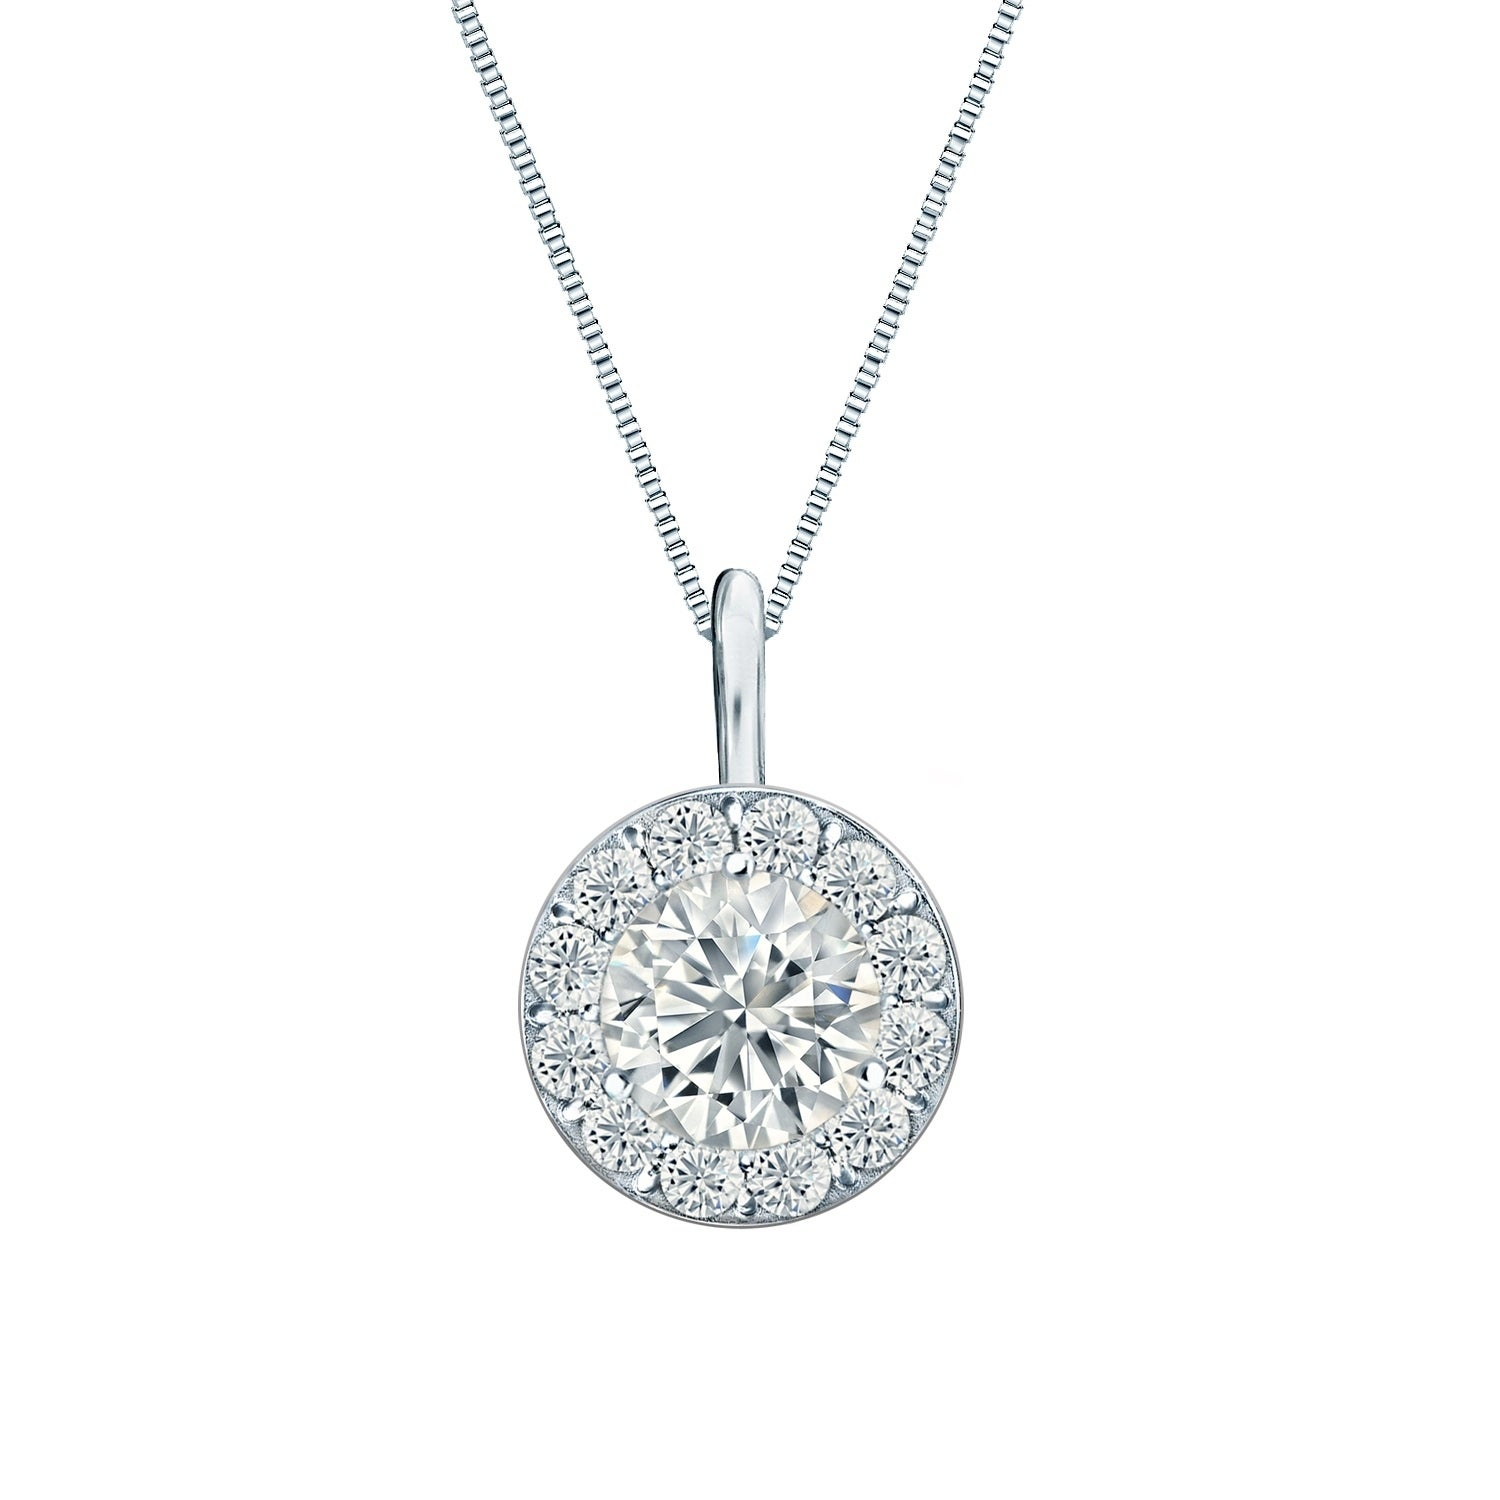 Ethical Sparkle 1/4Ctw Round Lab Created Halo Diamond Necklace 14K Gold Regarding 2019 Round Sparkle Halo Necklaces (View 9 of 25)